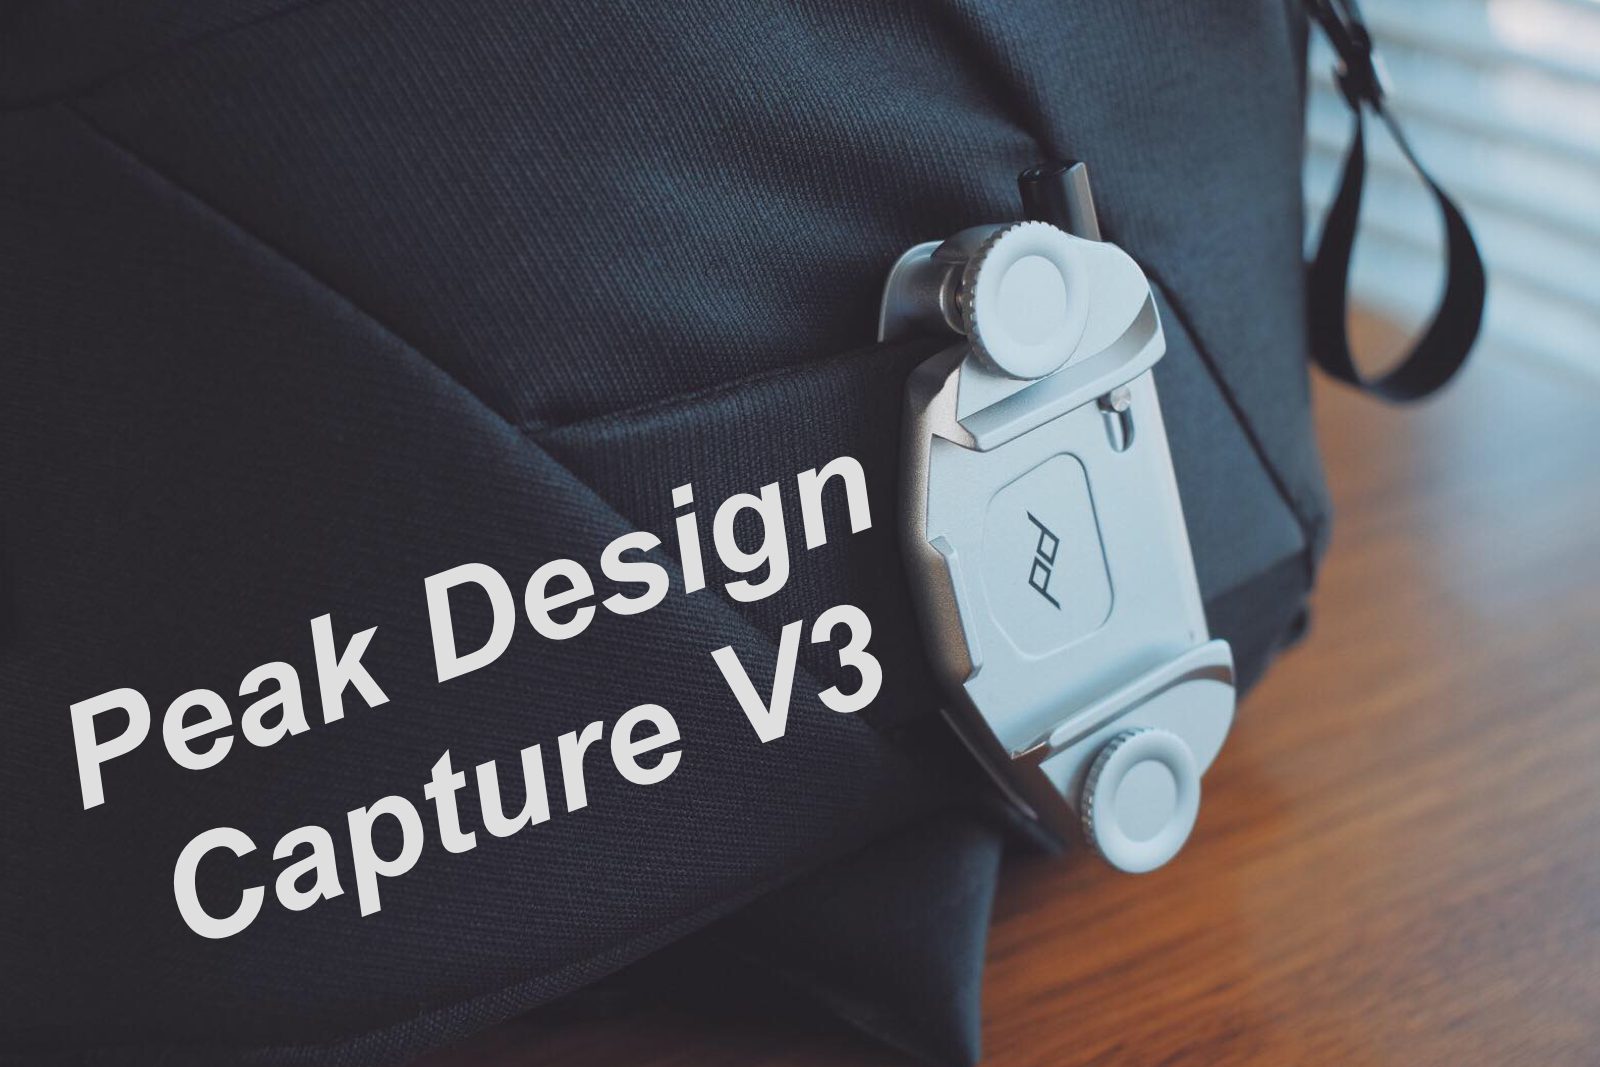 PeakDesign Capture V3